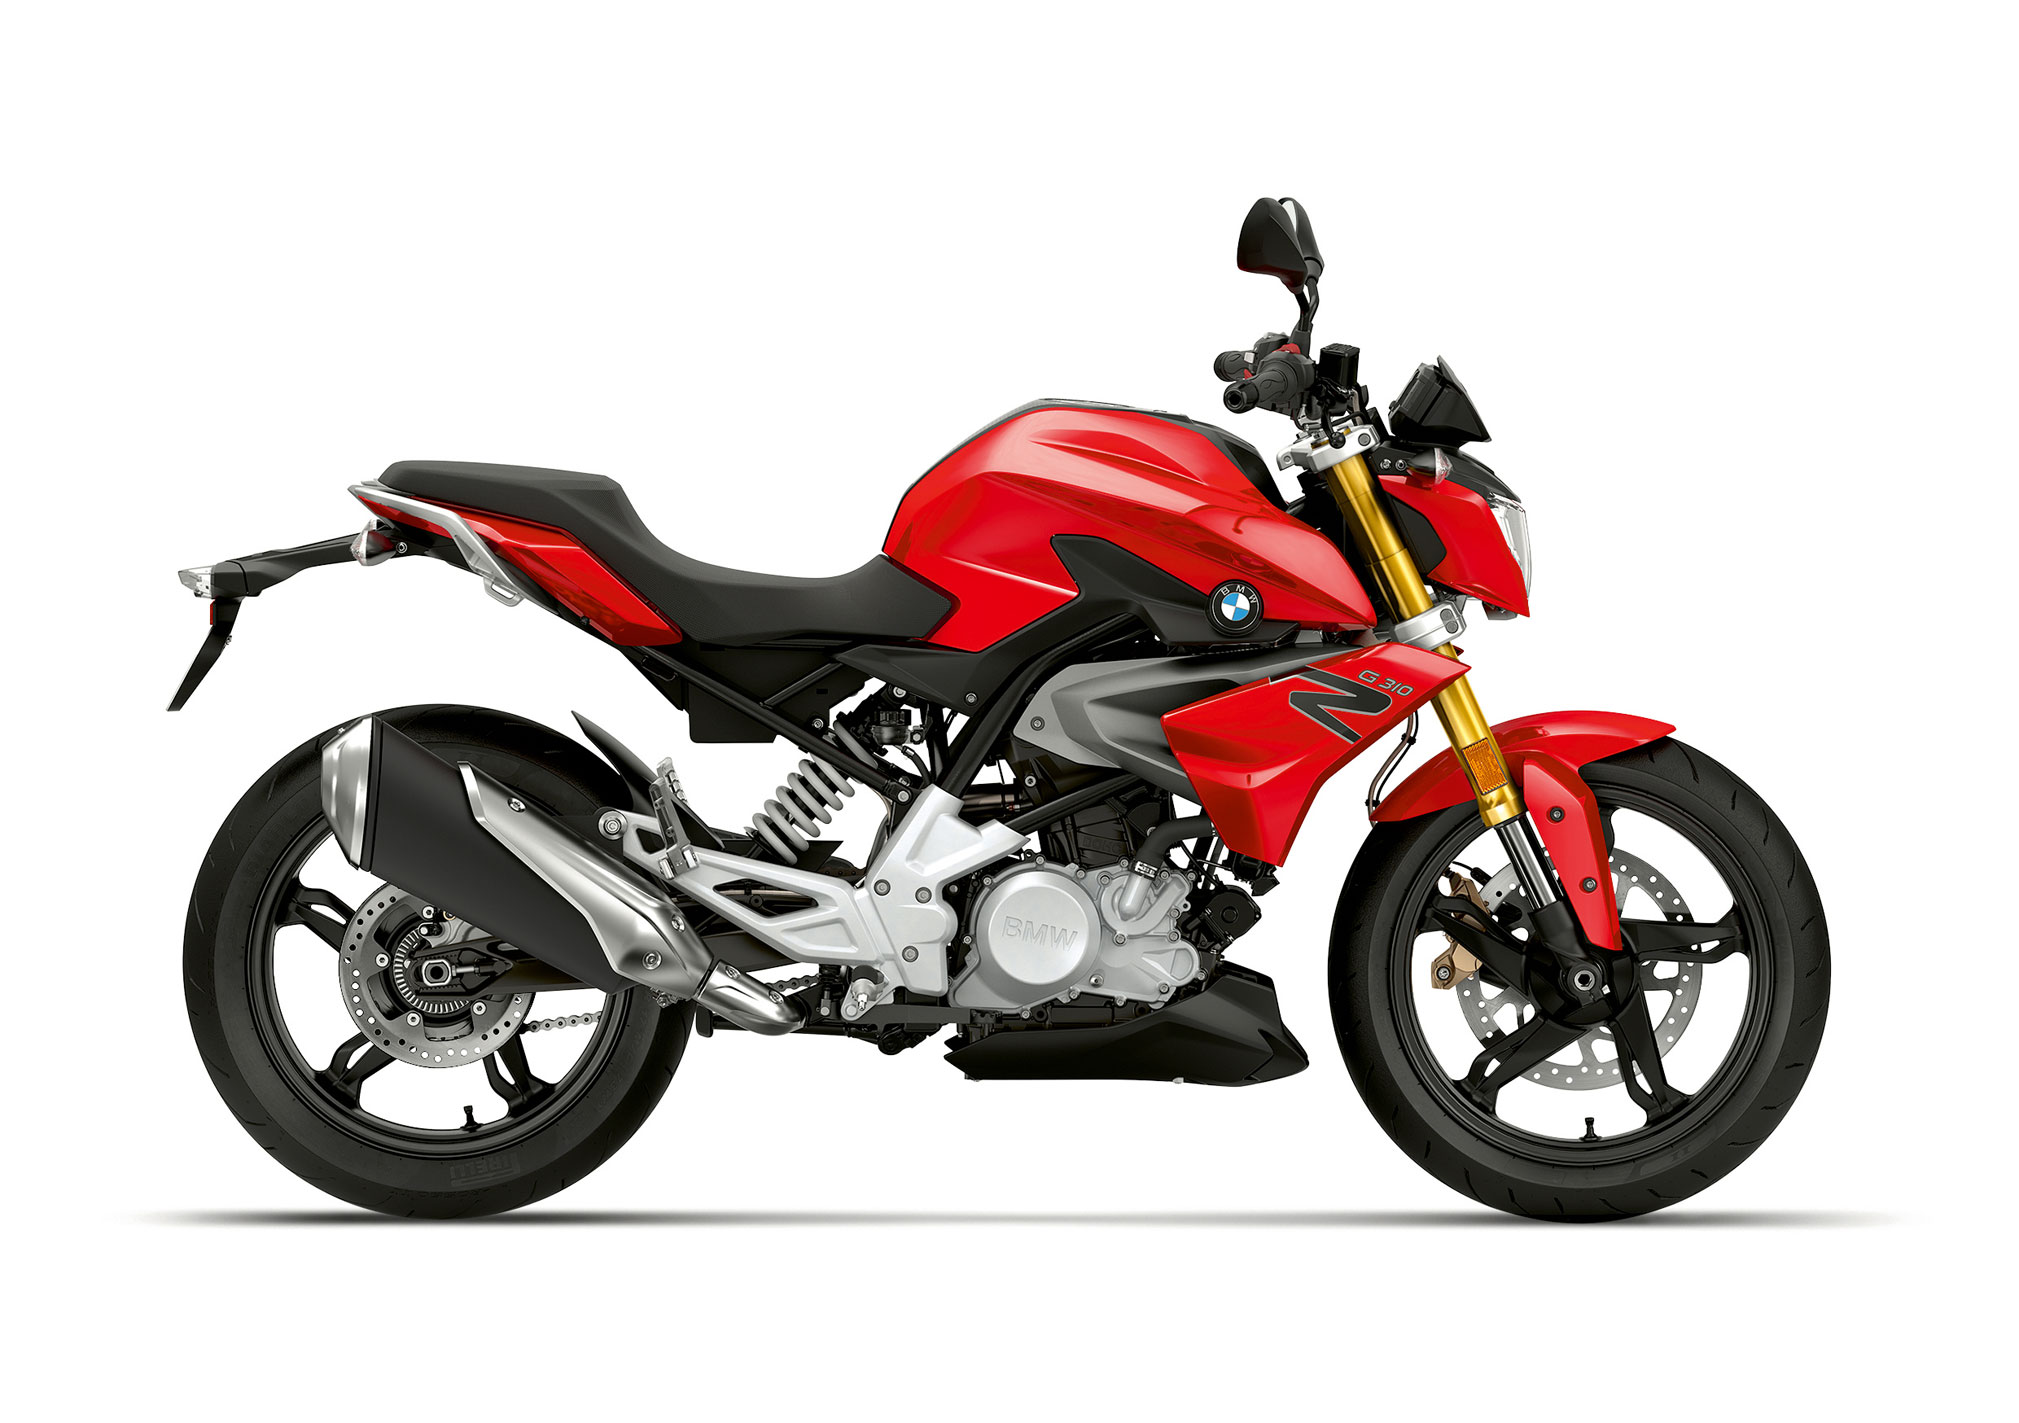 2019 BMW G310R Guide • Total Motorcycle